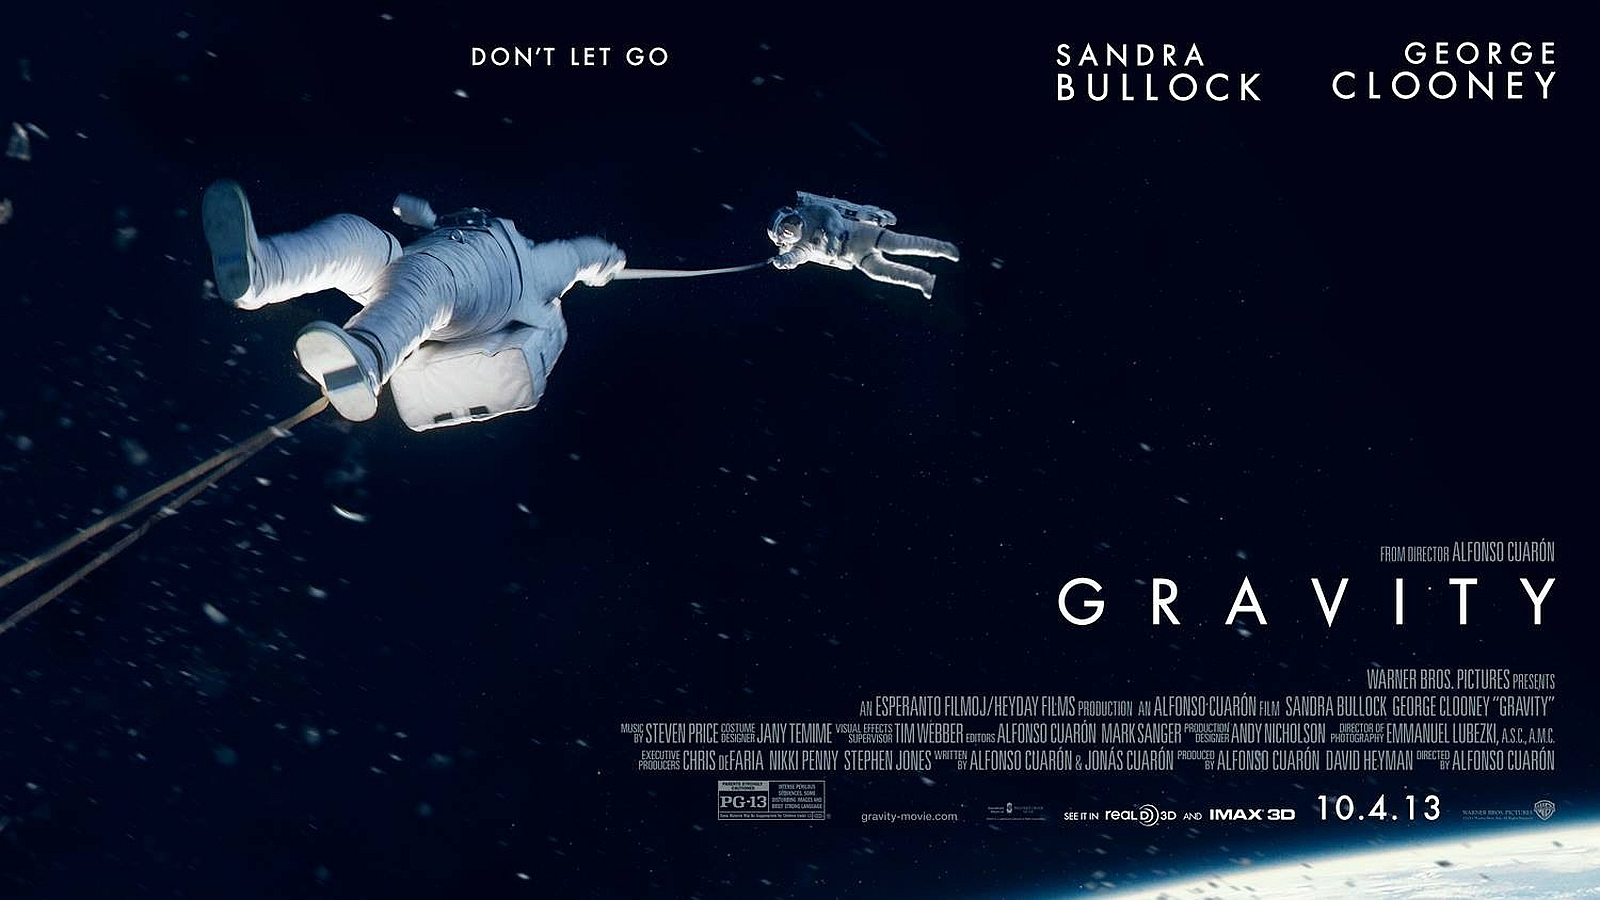 Gravity Wallpaper and Background Image   1600x900   ID 421687     Wallpapers ID 421687